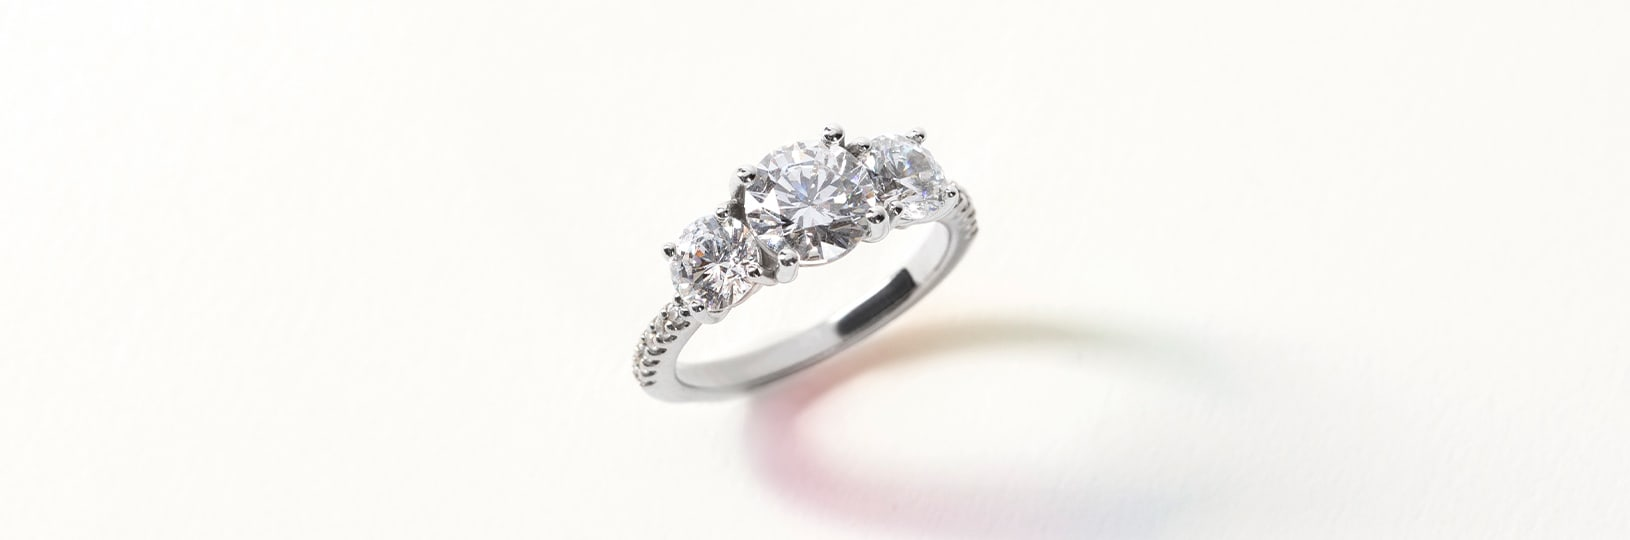 Three stone accented setting featuring round cut simulated diamonds